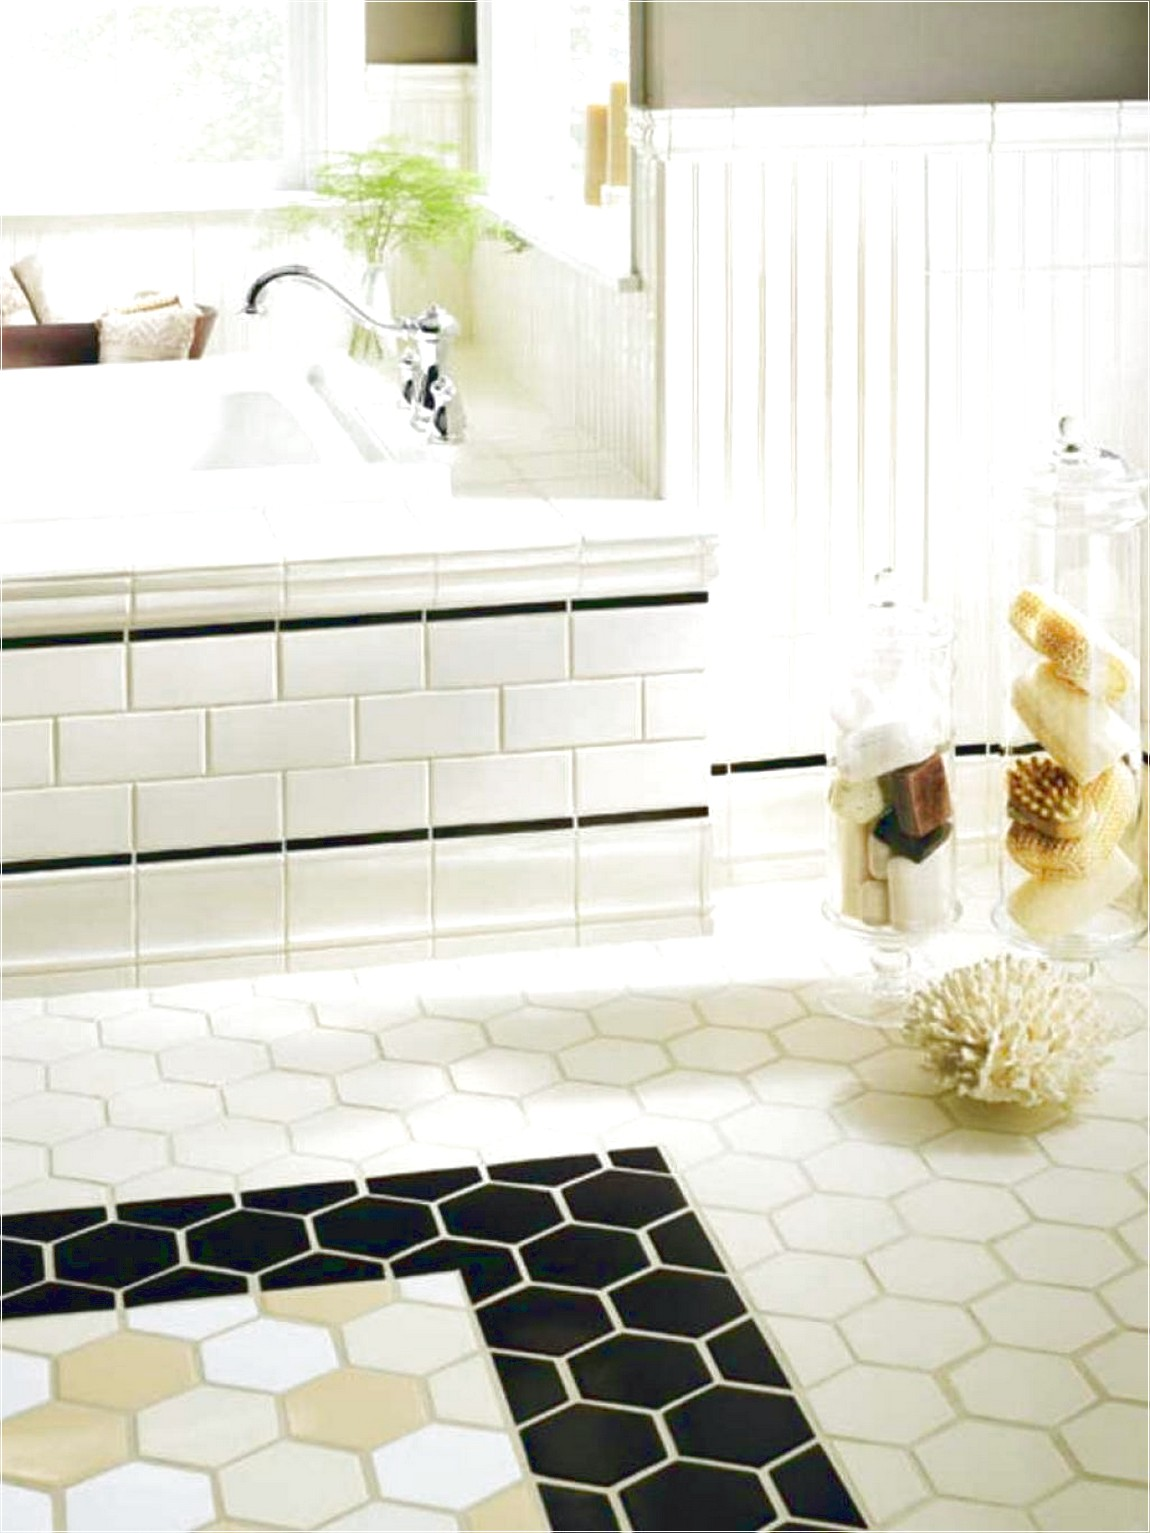 30 ideas on using hex tiles for bathroom floors popular types of bathroom wall tiles nice and dailygadgetfo Images